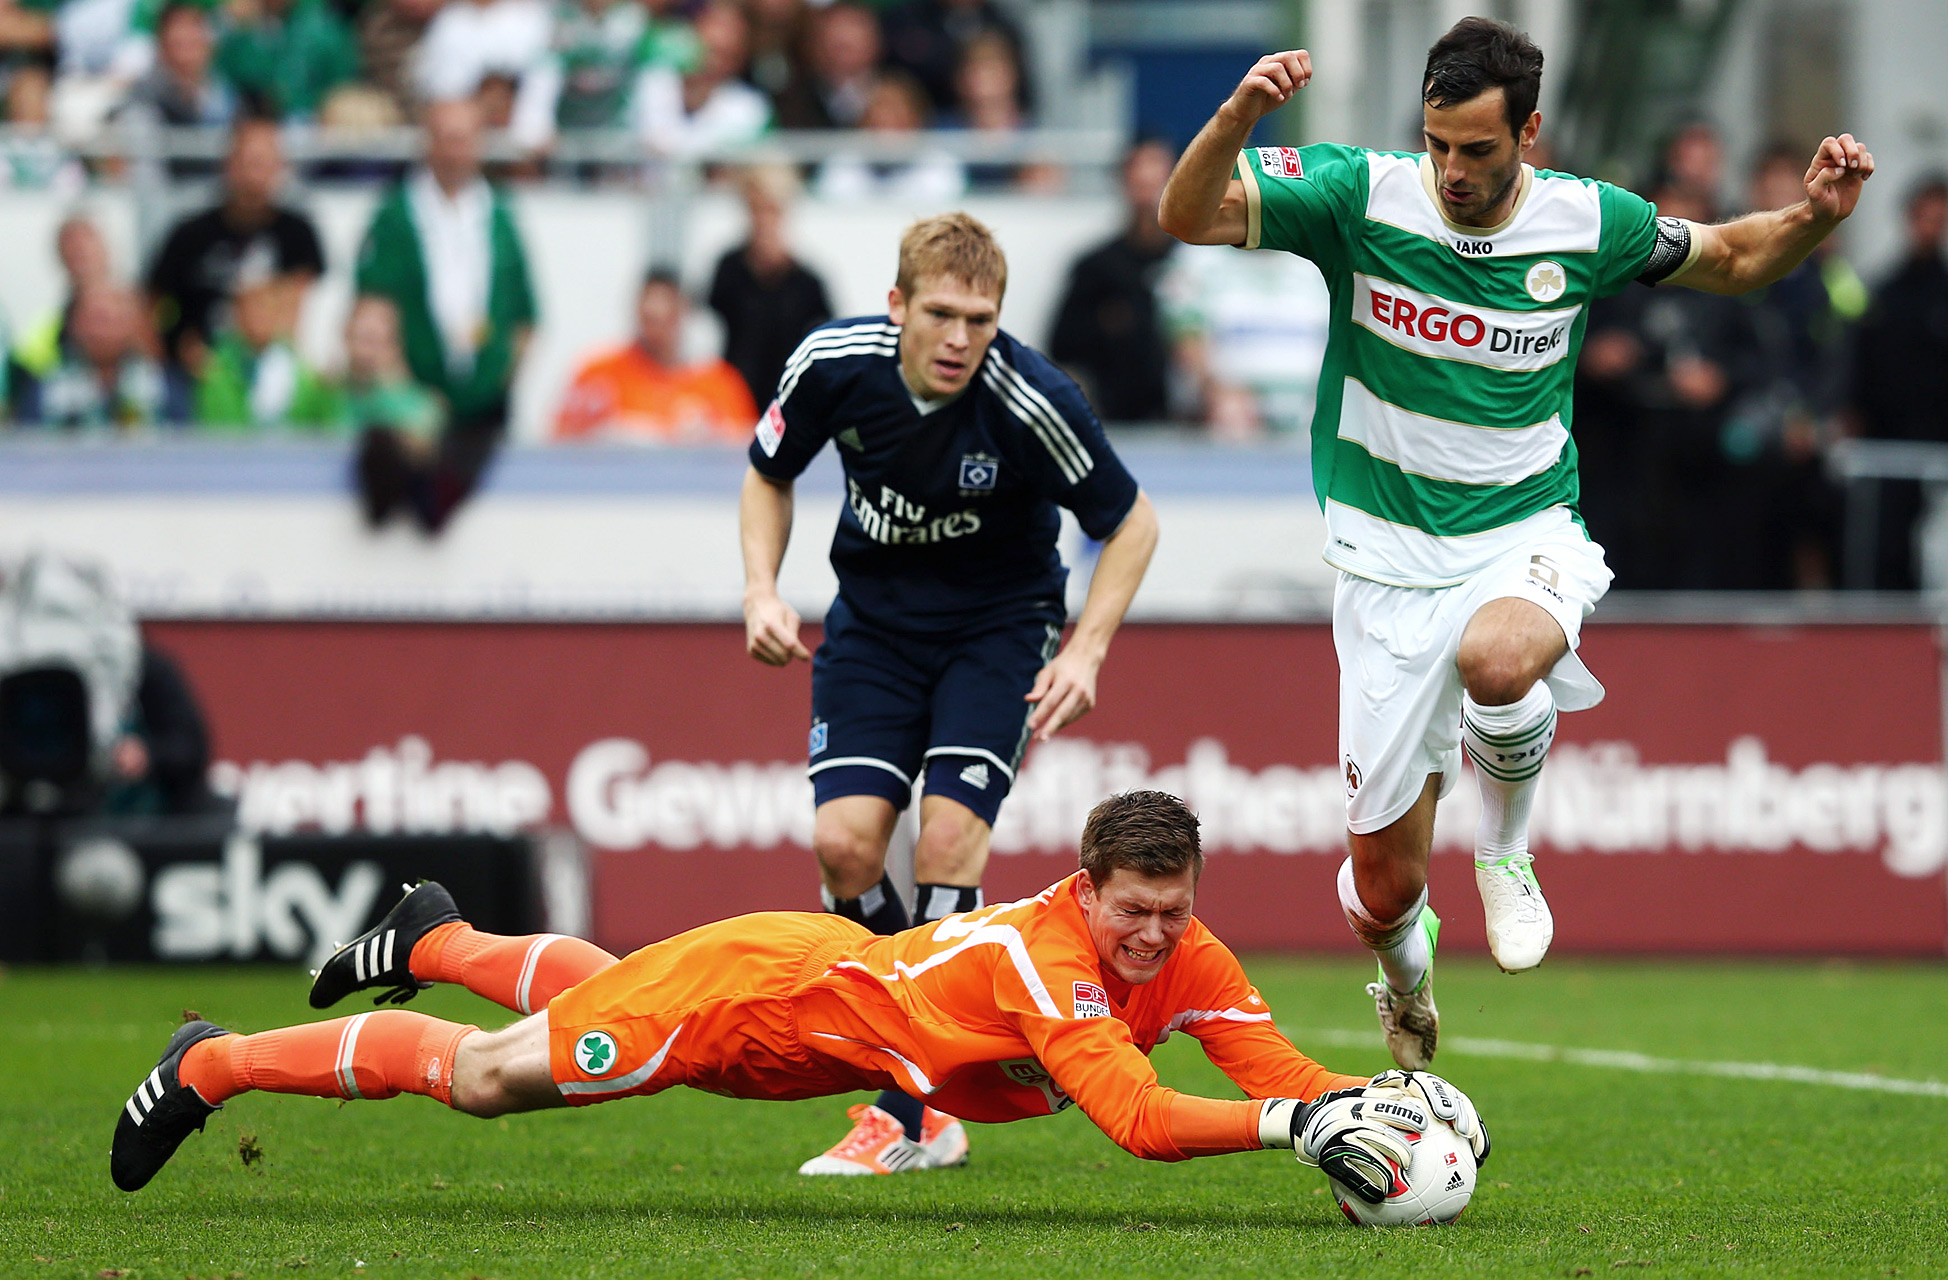 SpVgg Greuther Fuerth and Hamburger SV